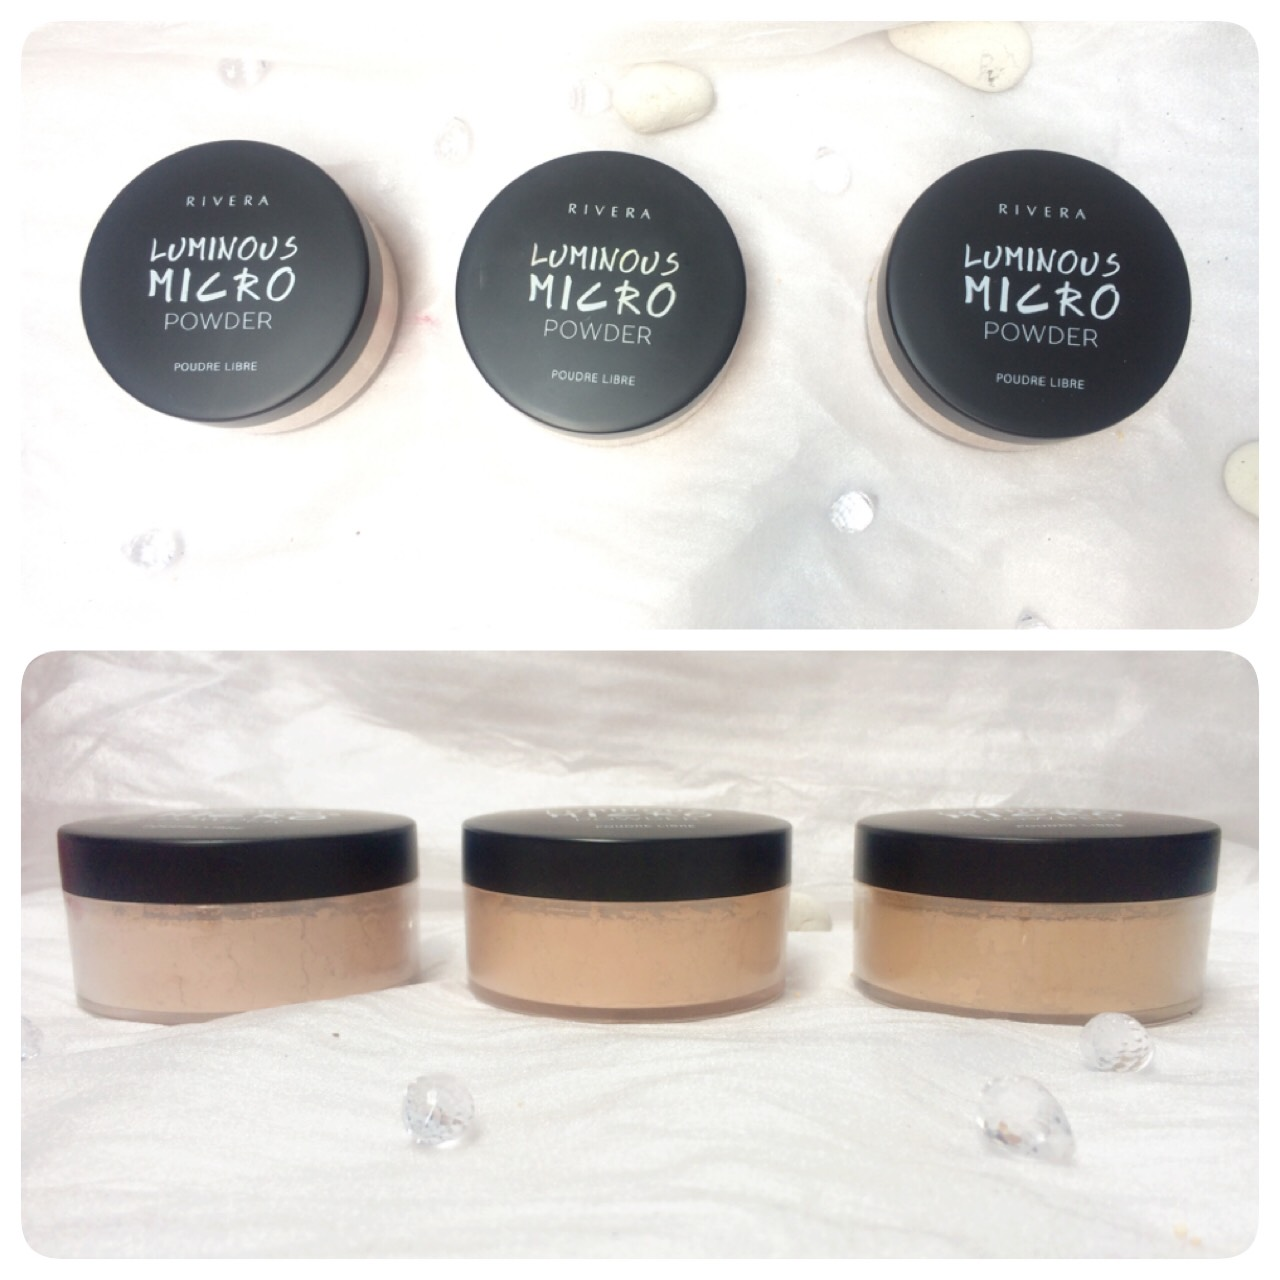 review-rivera-cosmetics-luminous-micro-powder-all-shades-natrarahmani